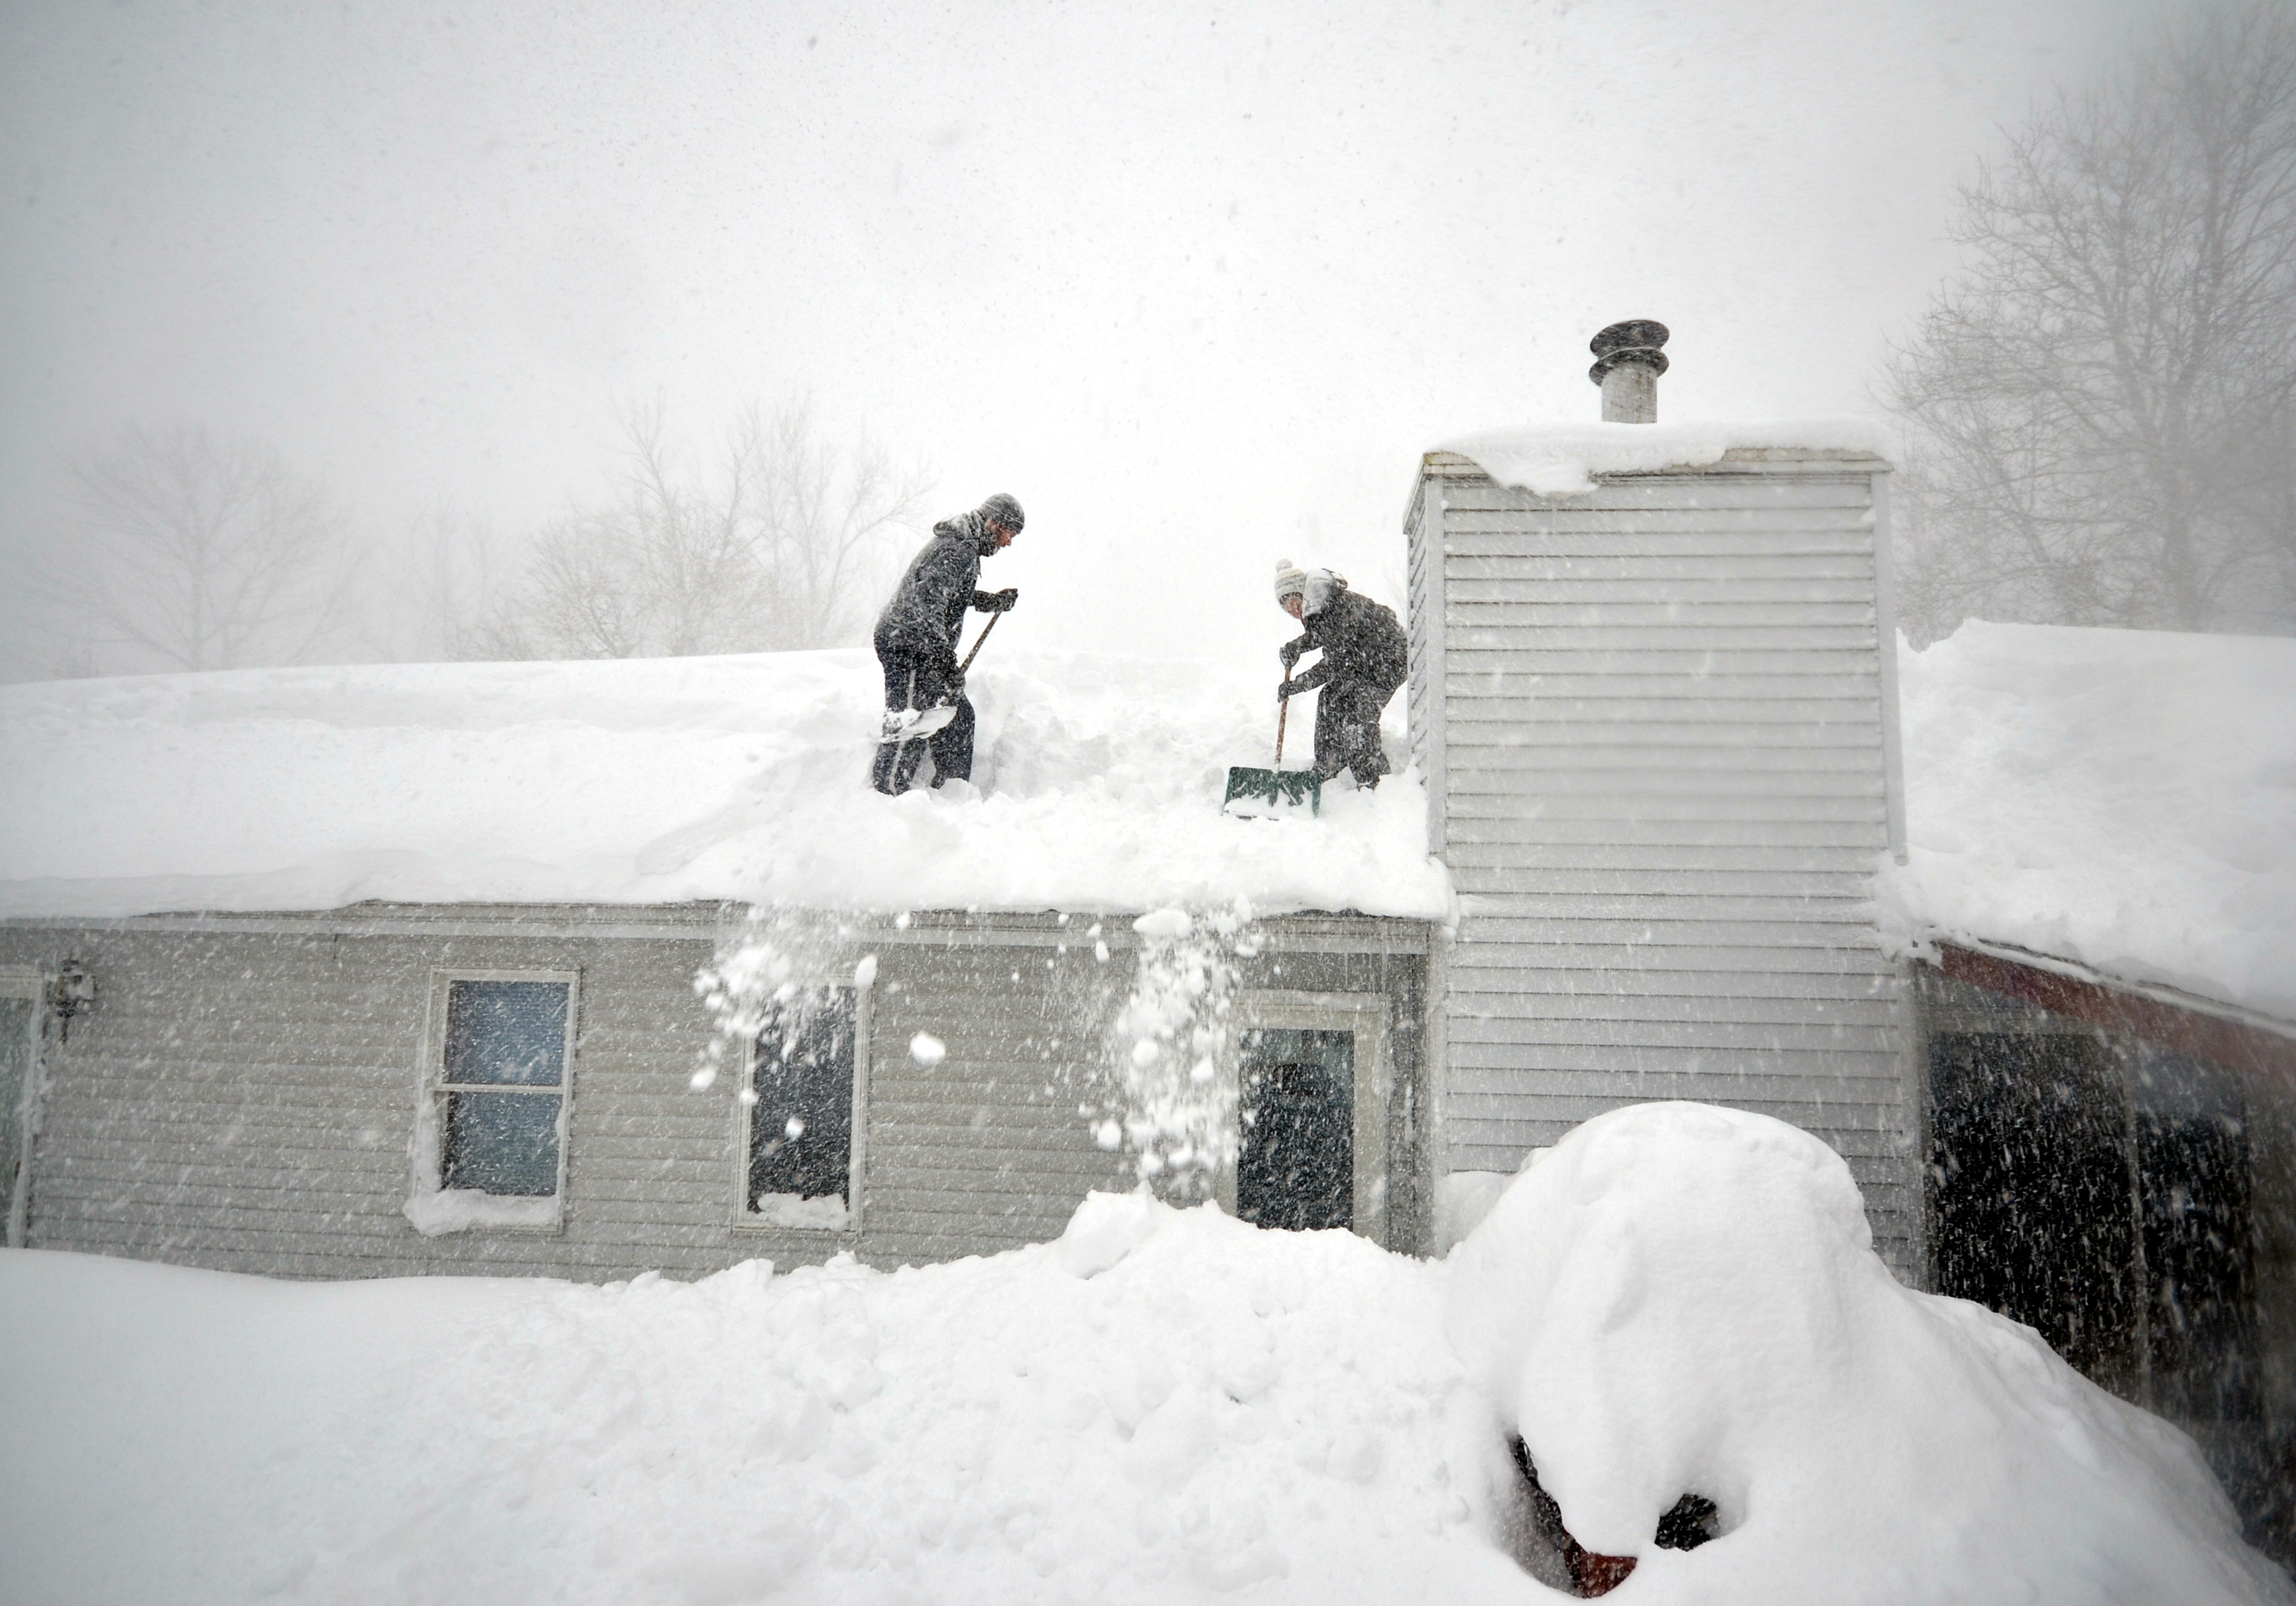 Large amounts of snow covering a house's roof.